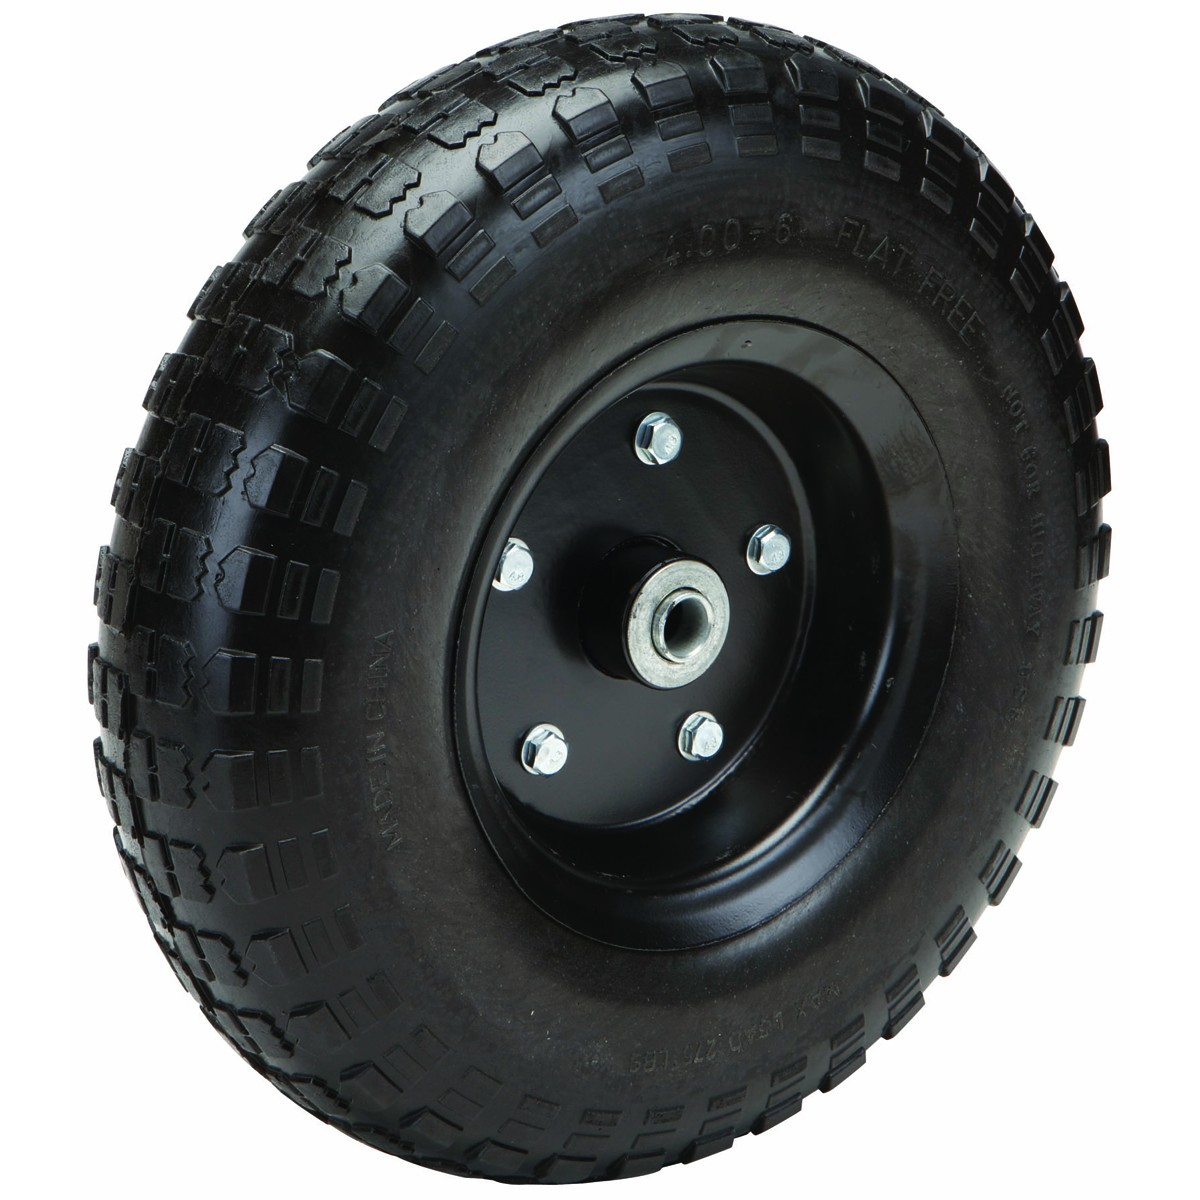 13 in. Flat-Free Heavy Duty Tire with Powder Coated Steel Hub